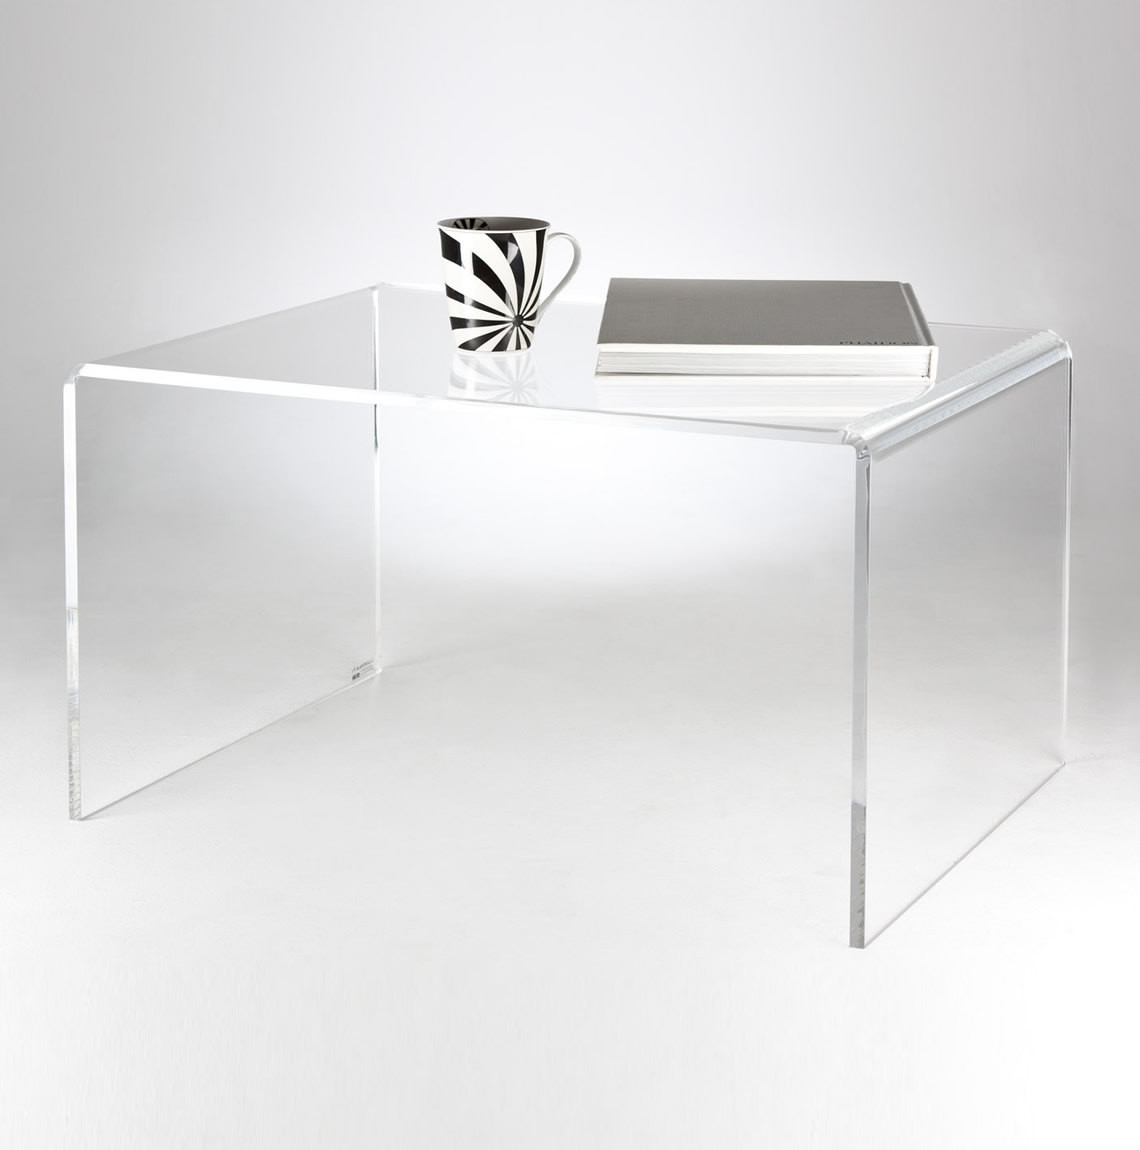 Best ideas about Clear Coffee Table . Save or Pin Clear Acrylic Coffee Table Premium acrylic Made in the UK Now.